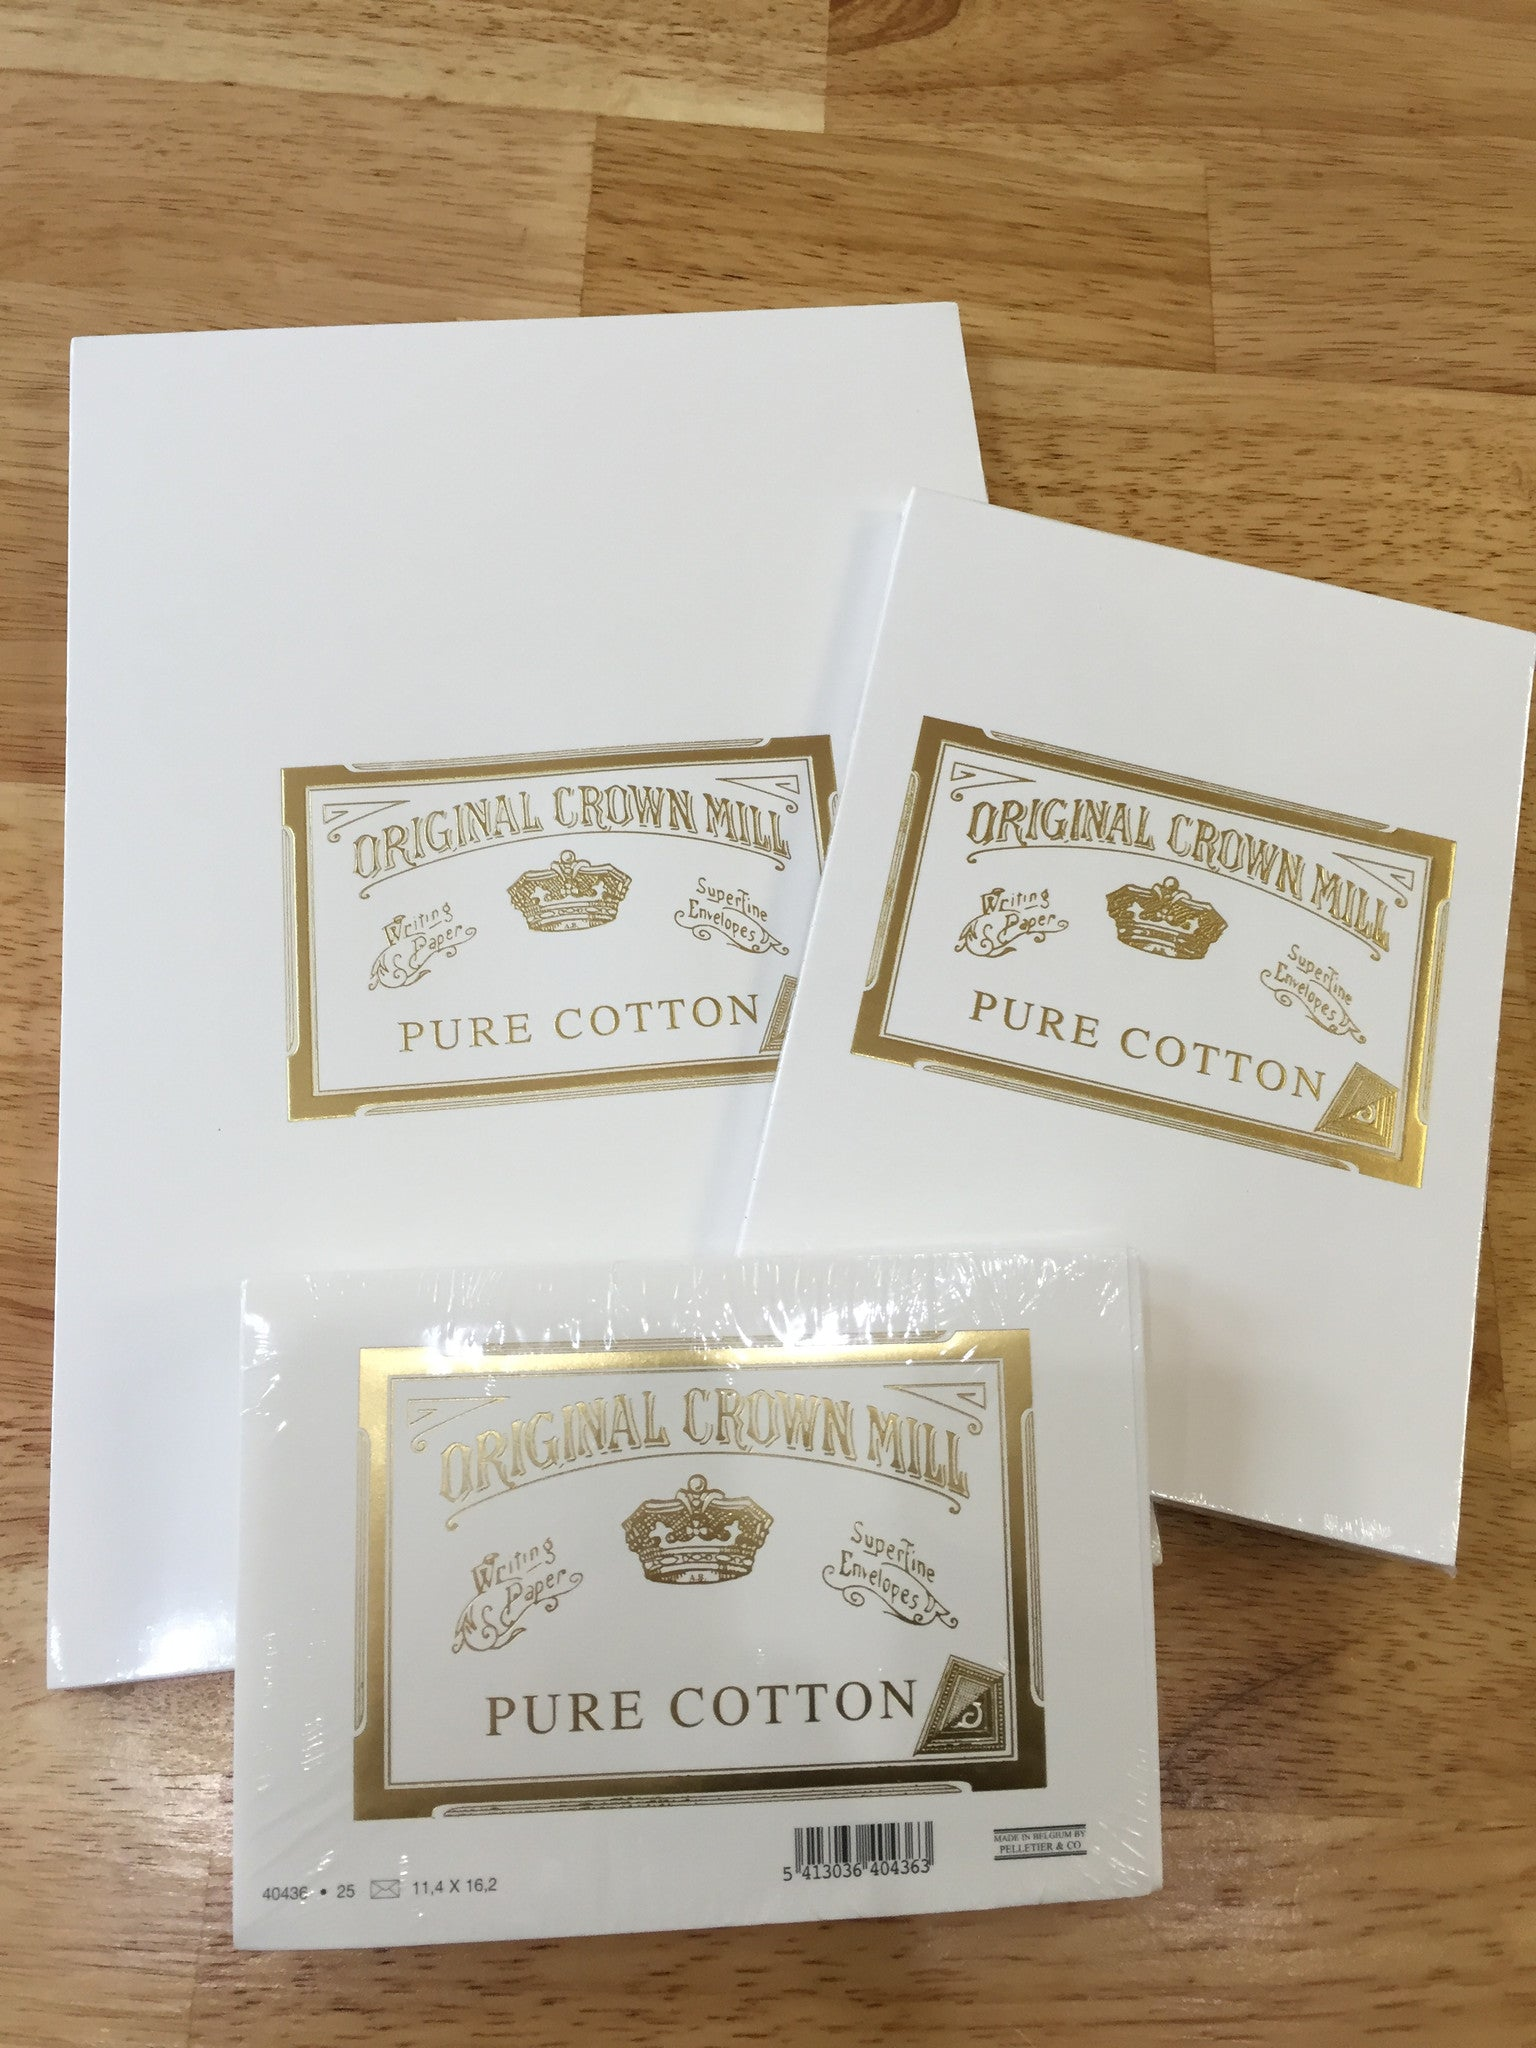 Original Crown Mill - Pure Cotton